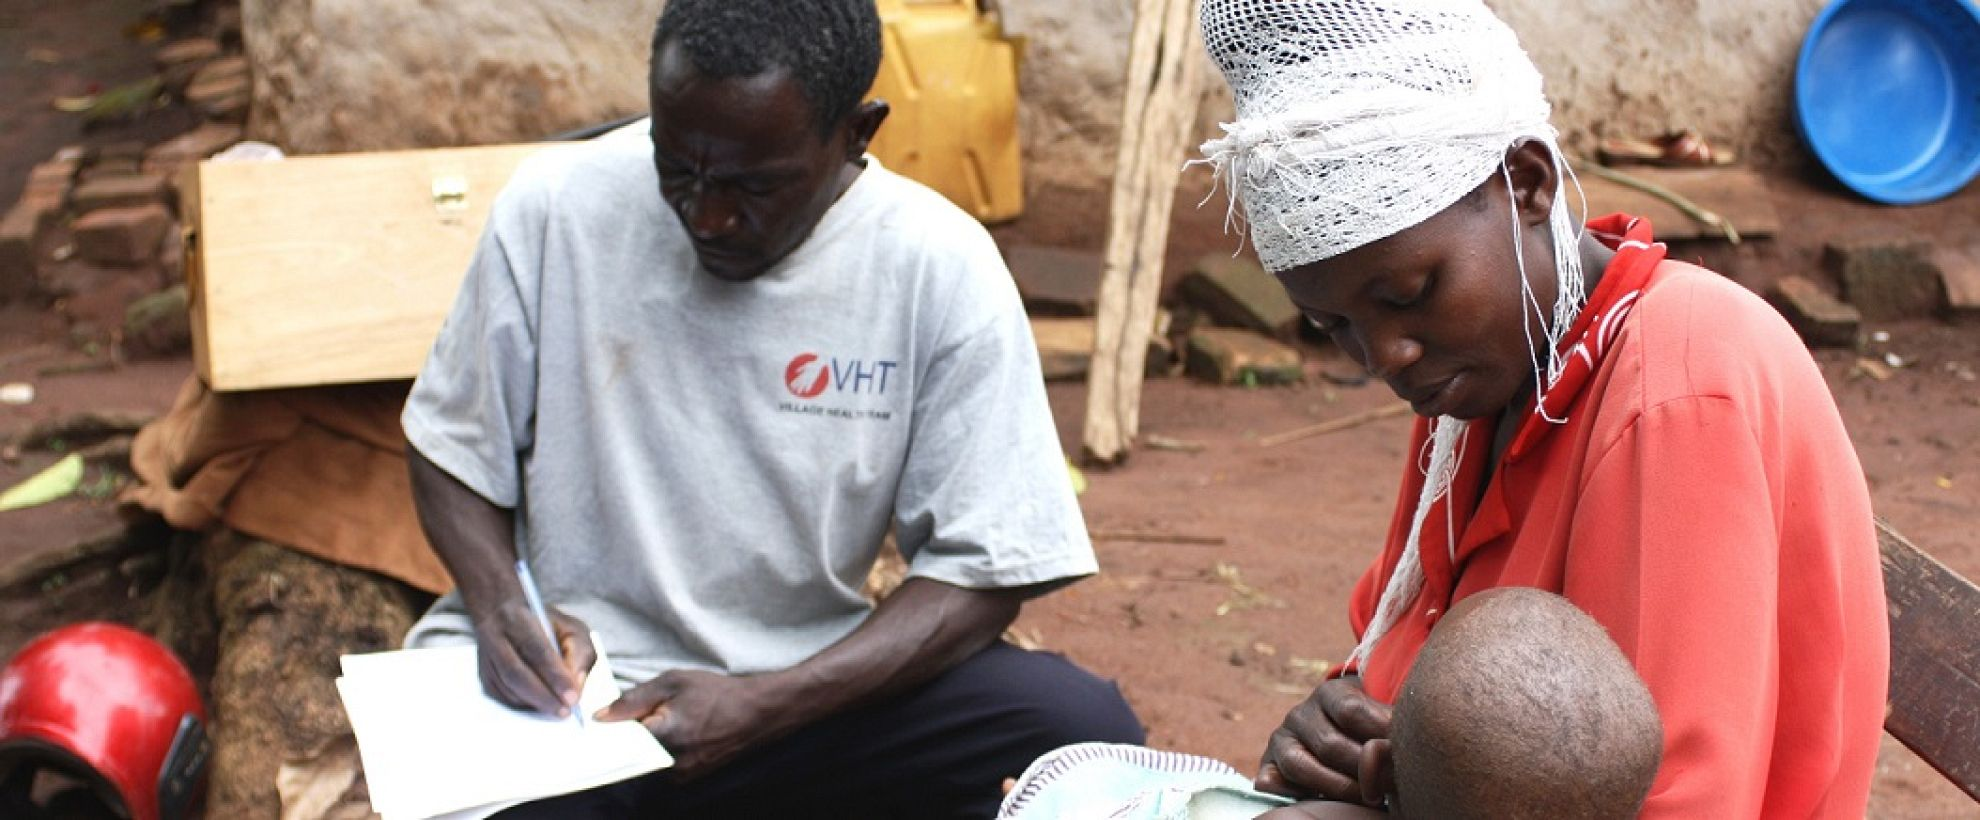 Latest News New malaria consortium project will expand access to iccm services across mid western uganda